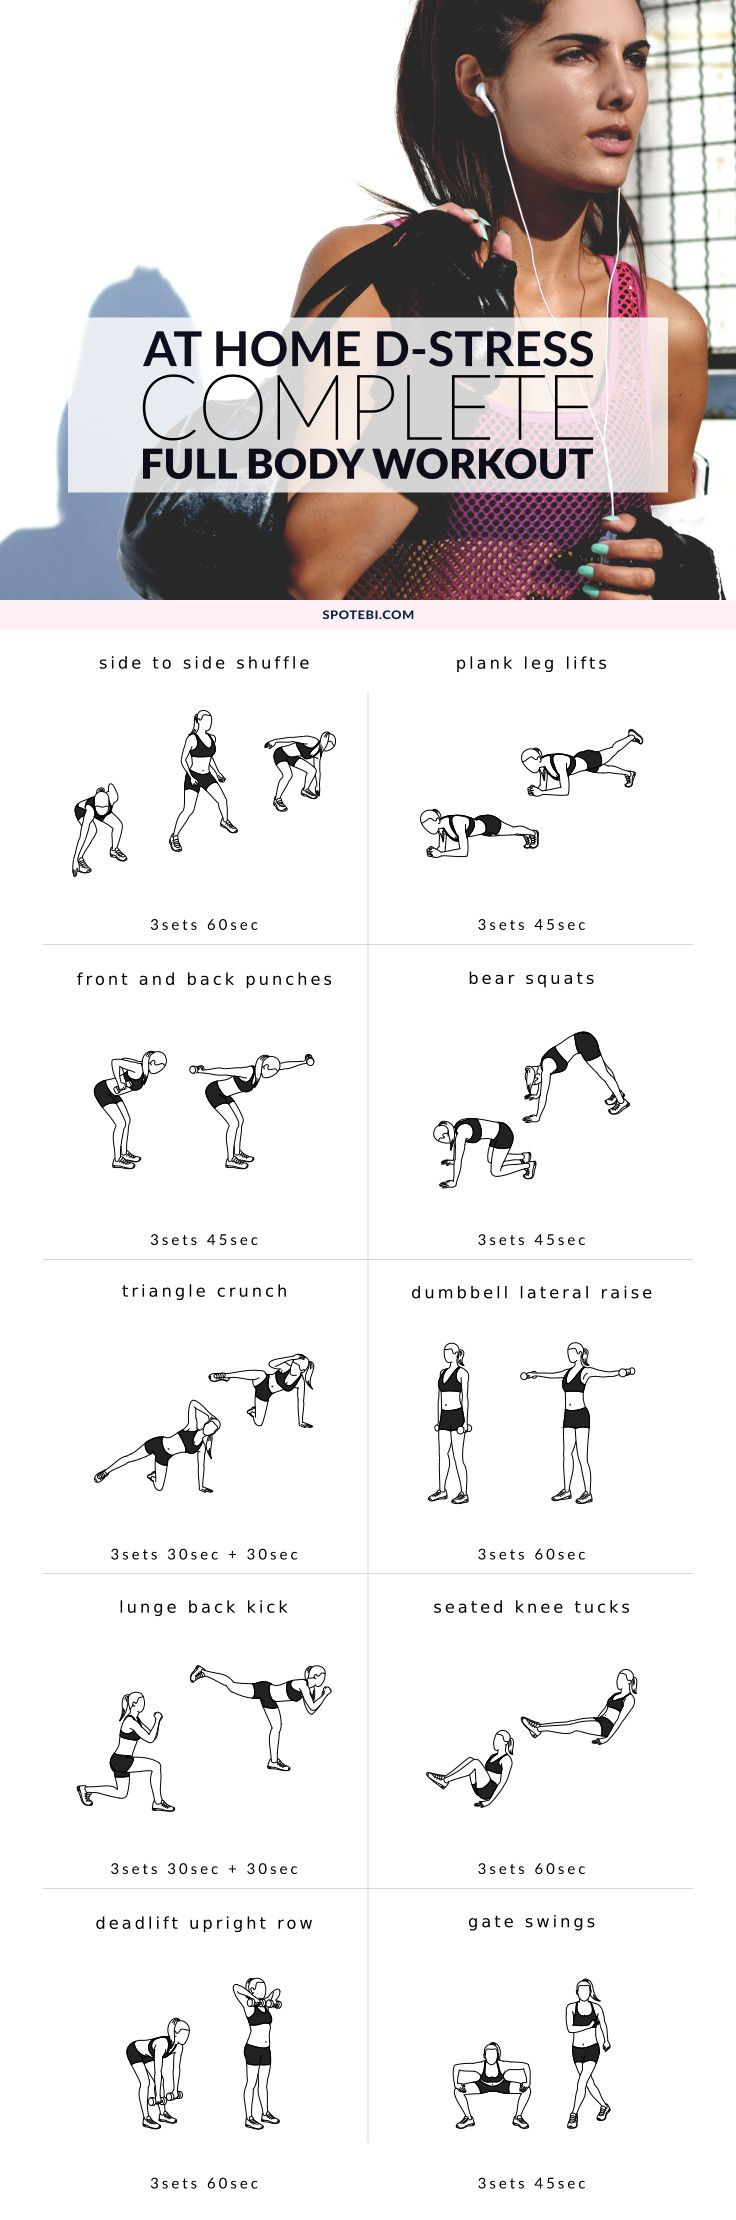 An at home full body workout to help d-stress.